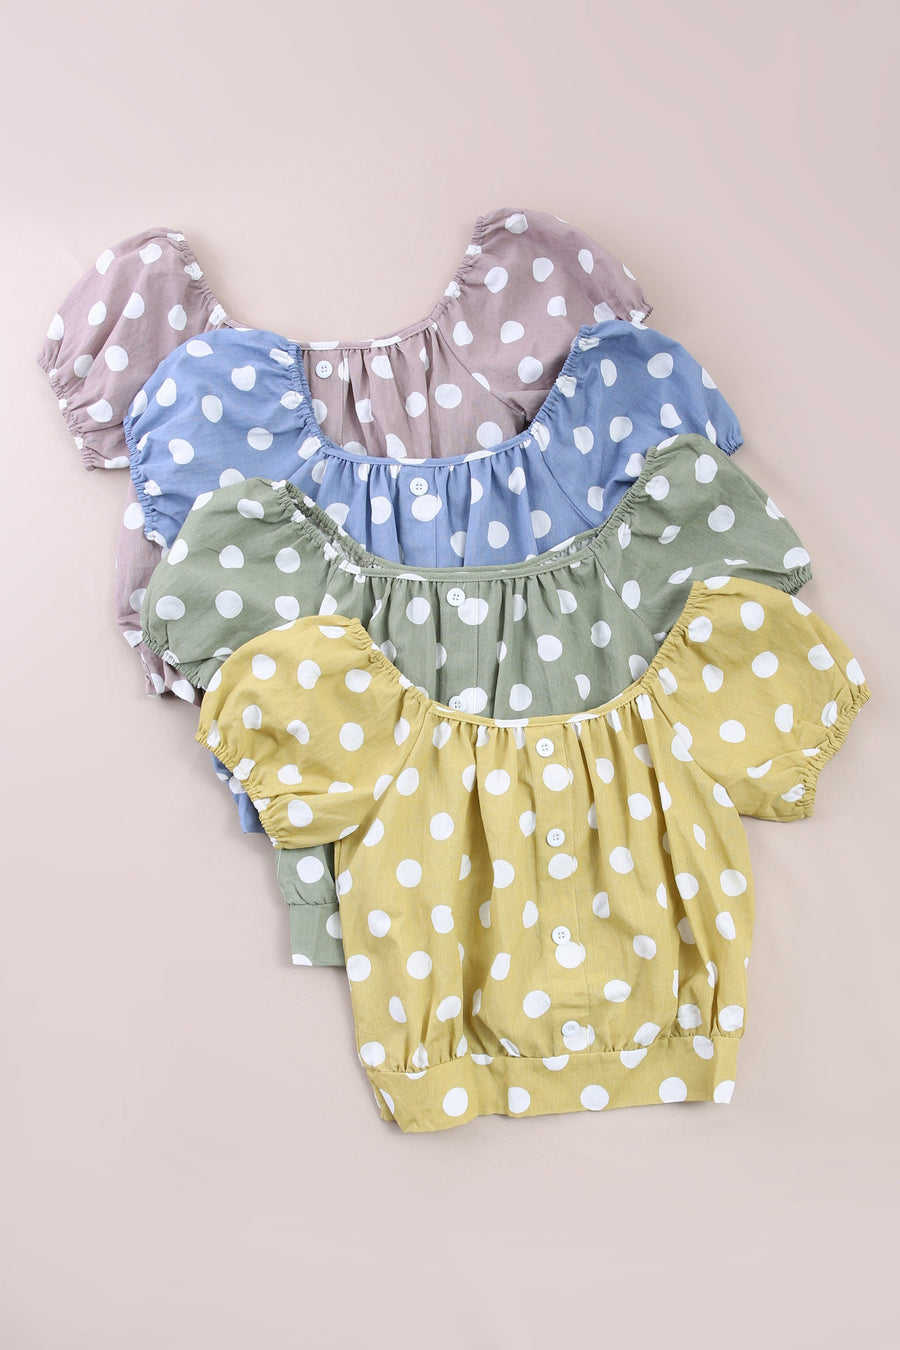 Polka Dot Top 6118 Tops